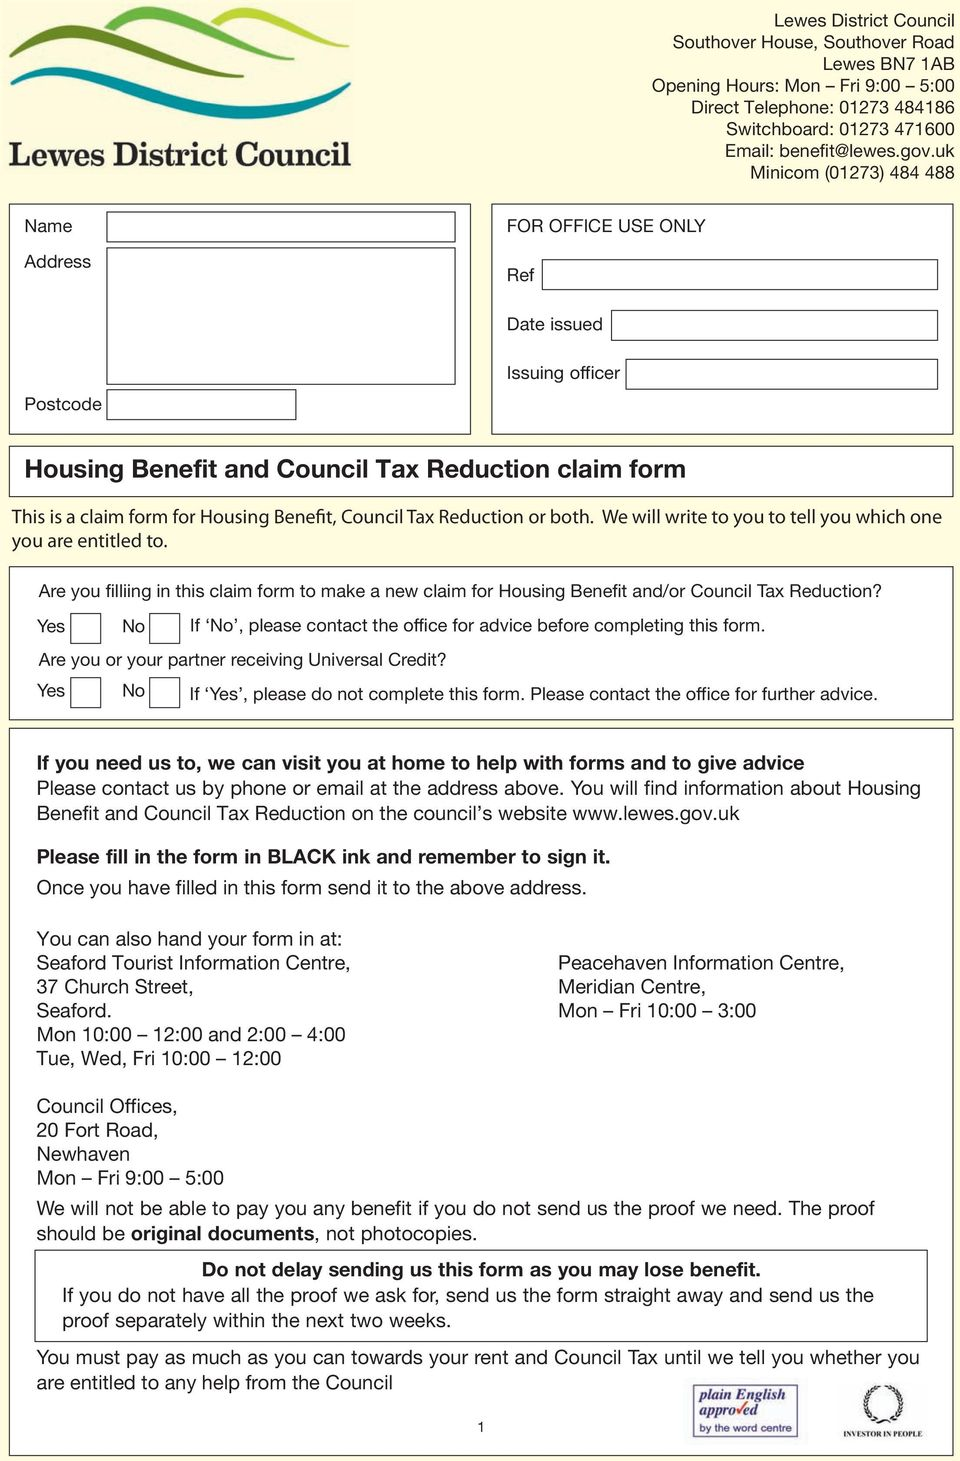 Council Tax Reduction or both. We will write to you to tell you which one you are entitled to. Are you filliing in this claim form to make a new claim for Housing Benefit and/or Council Tax Reduction?